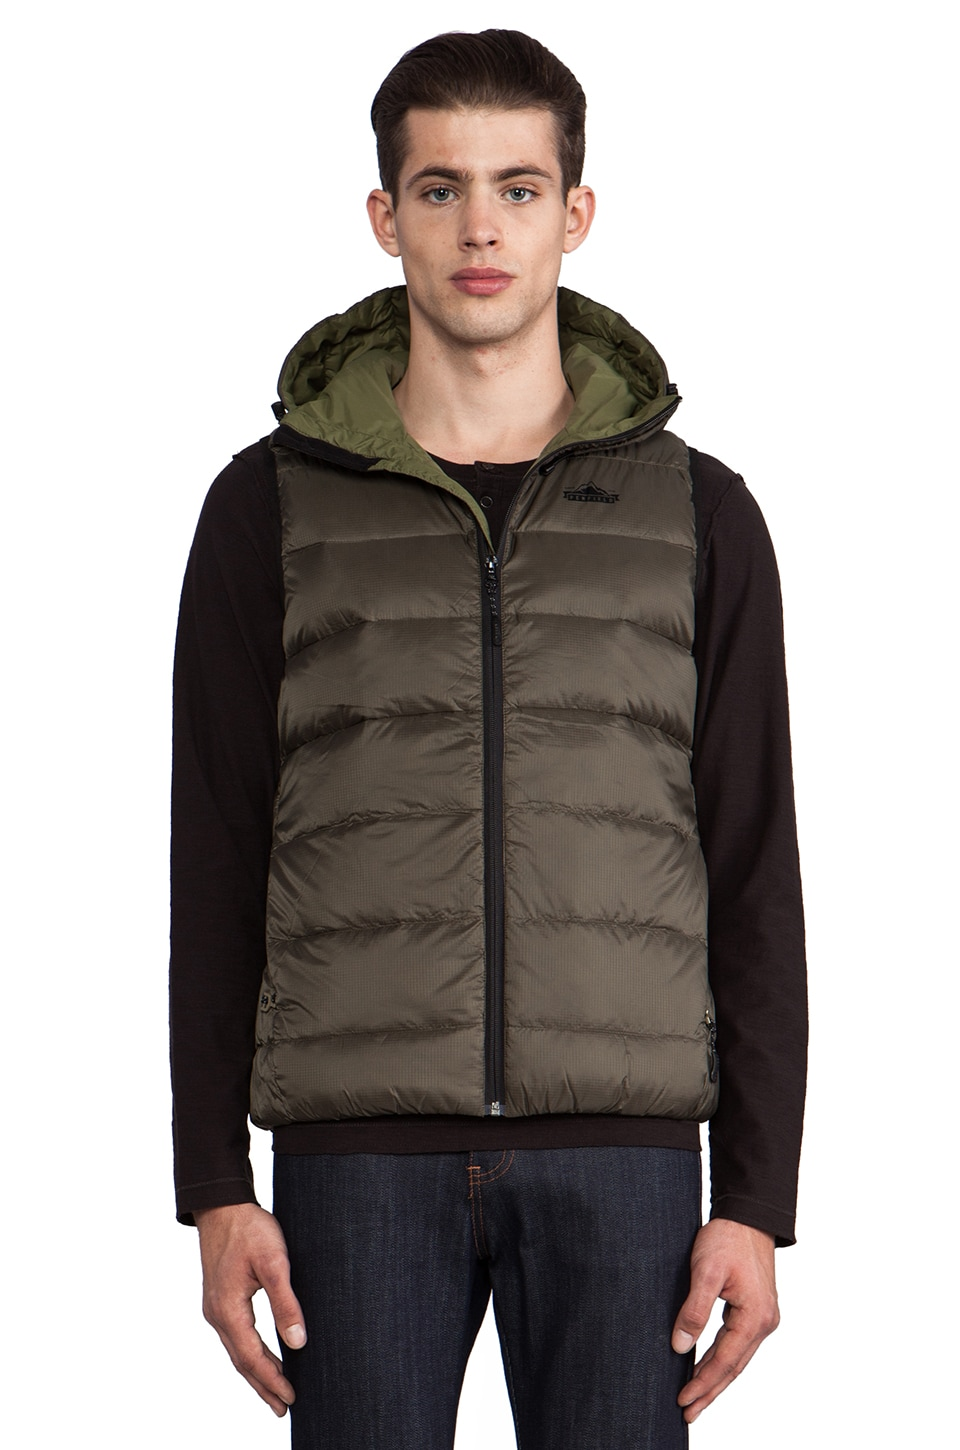 Penfield Chinook Packable Down Vest in Olive